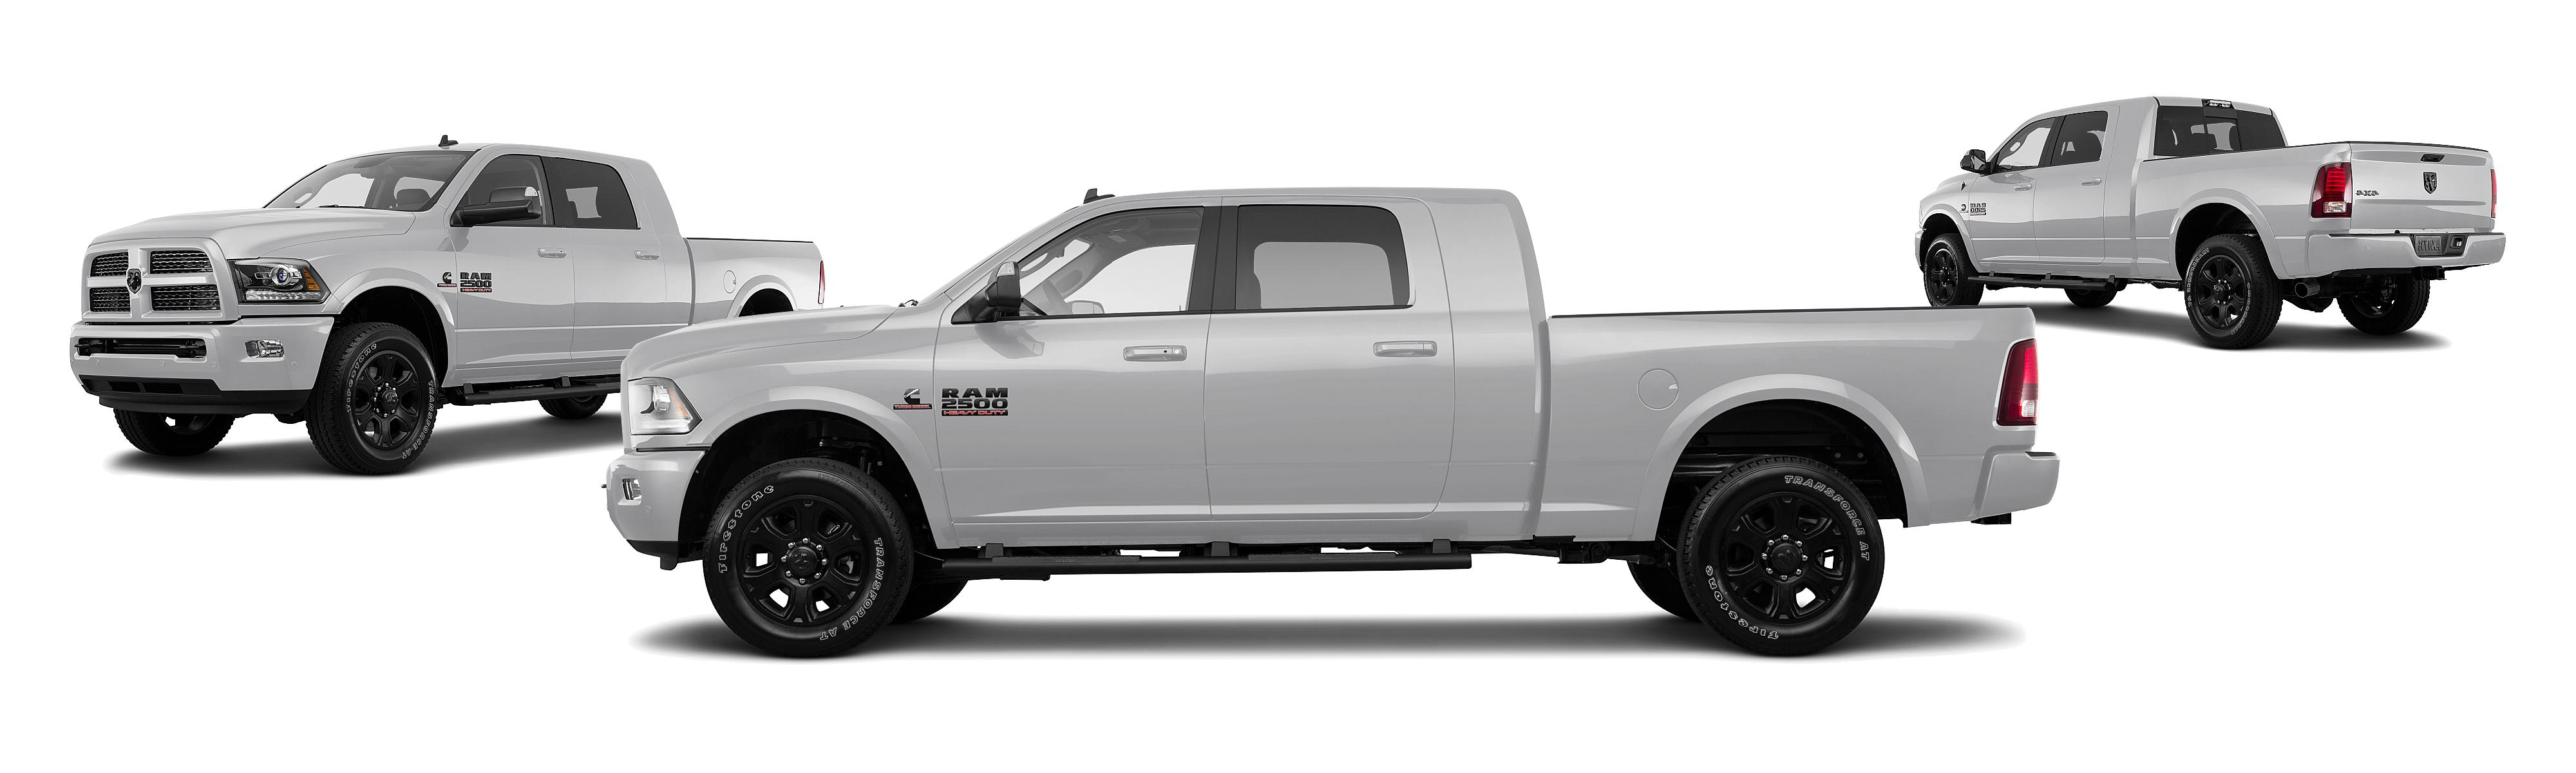 2017 ram 2500 mega cab configurations. Black Bedroom Furniture Sets. Home Design Ideas